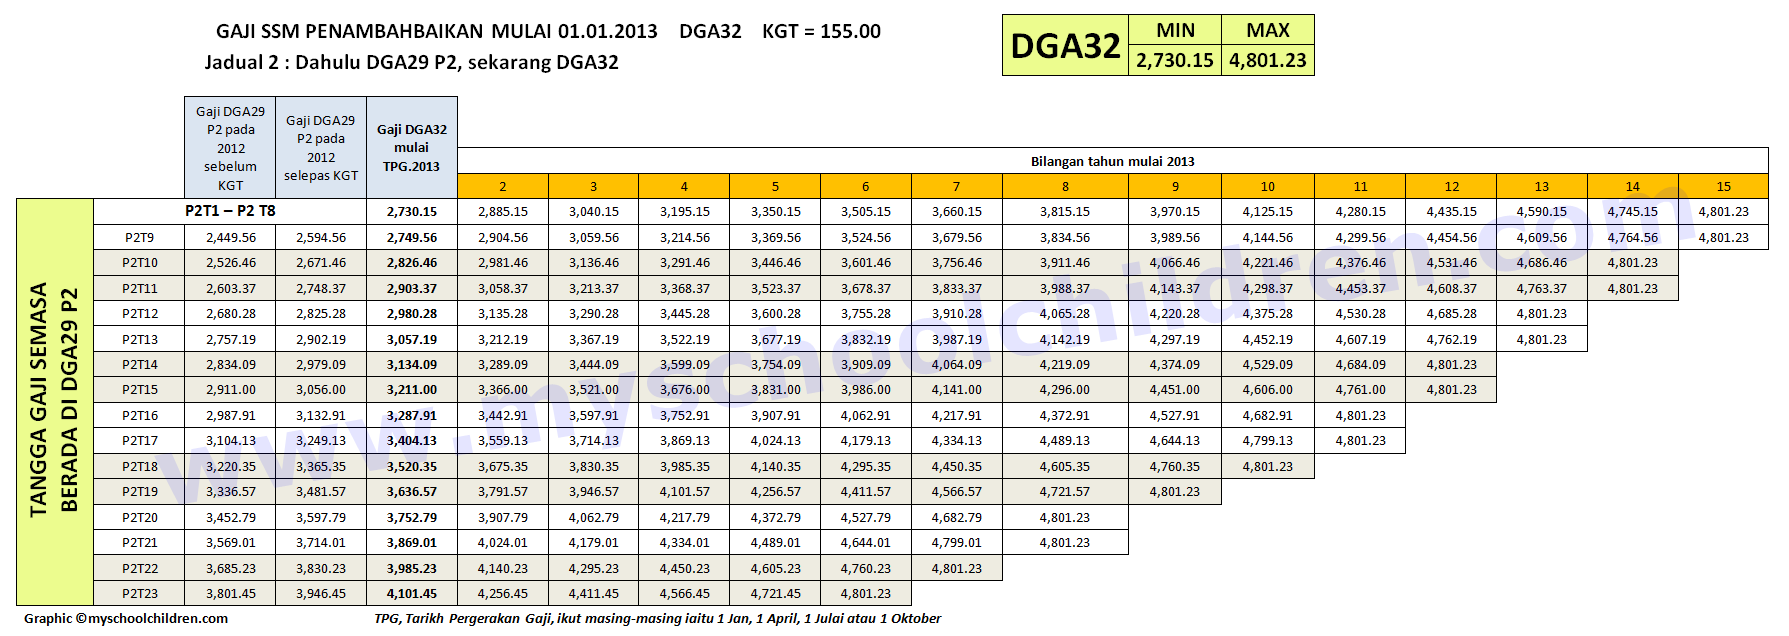 DGA32 - DGA38 from Grade DGA29 - DGA34 Backdated to year 2012 **